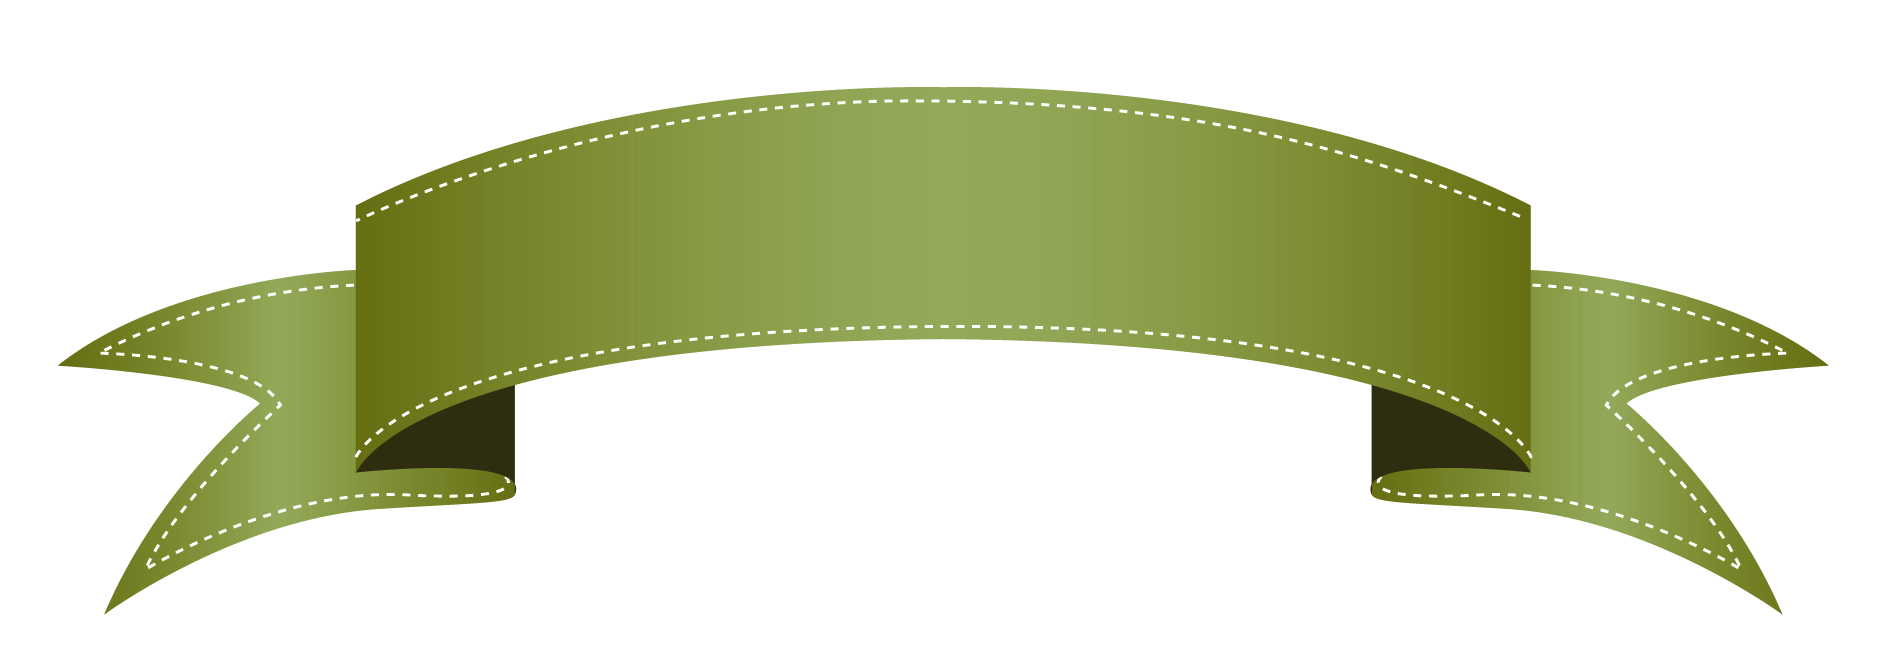 green banner png